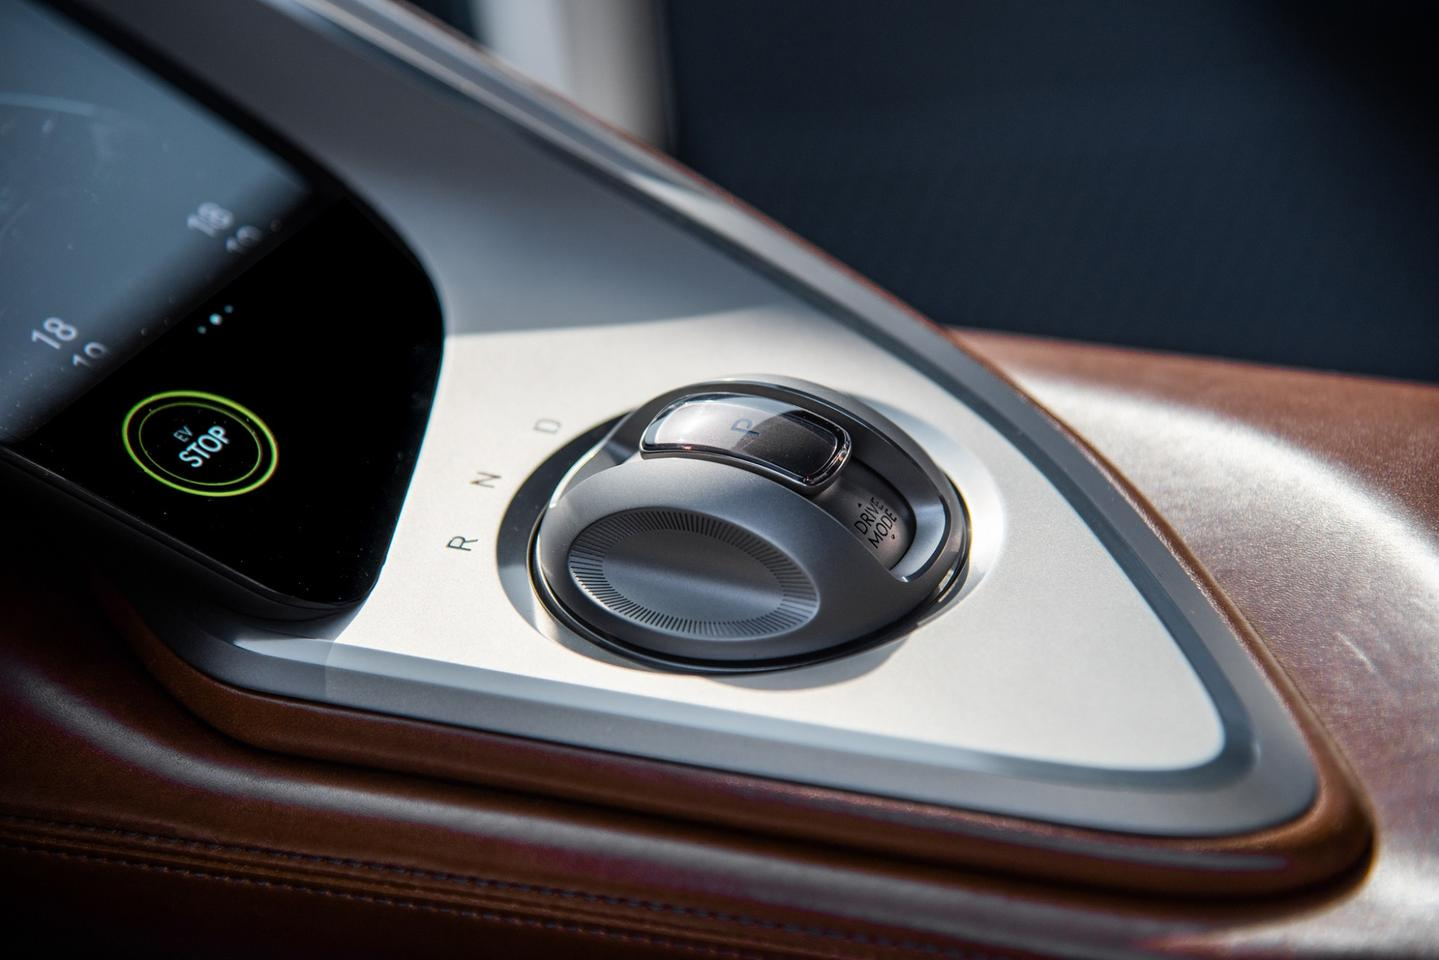 The Crystal Sphere Electronic Shift Lever at the driver's right hand provides simple transmission control